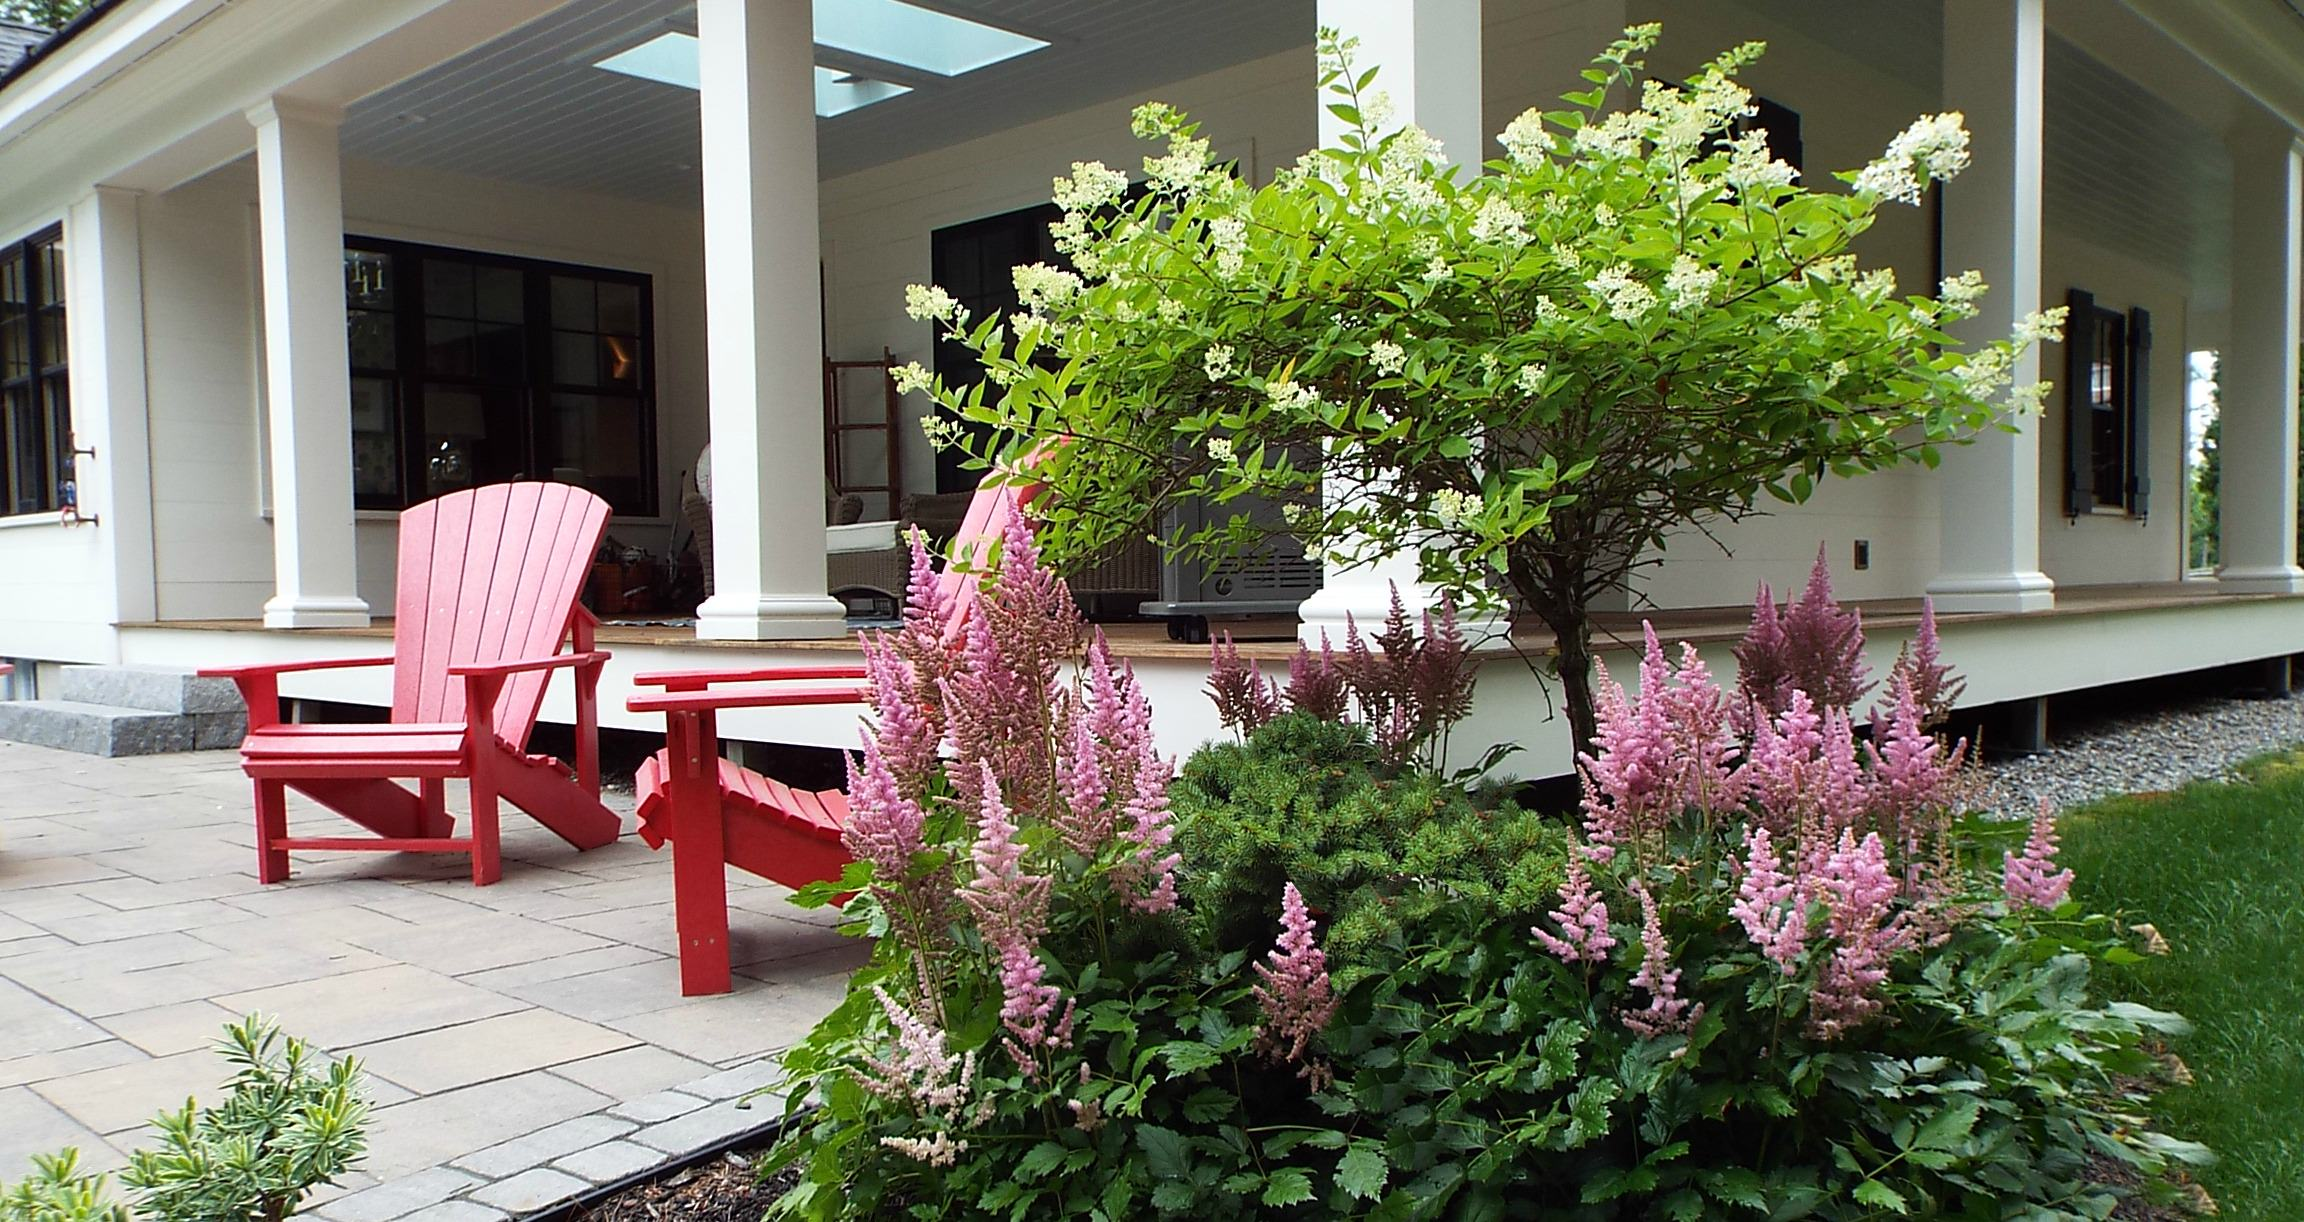 red chairs and plants